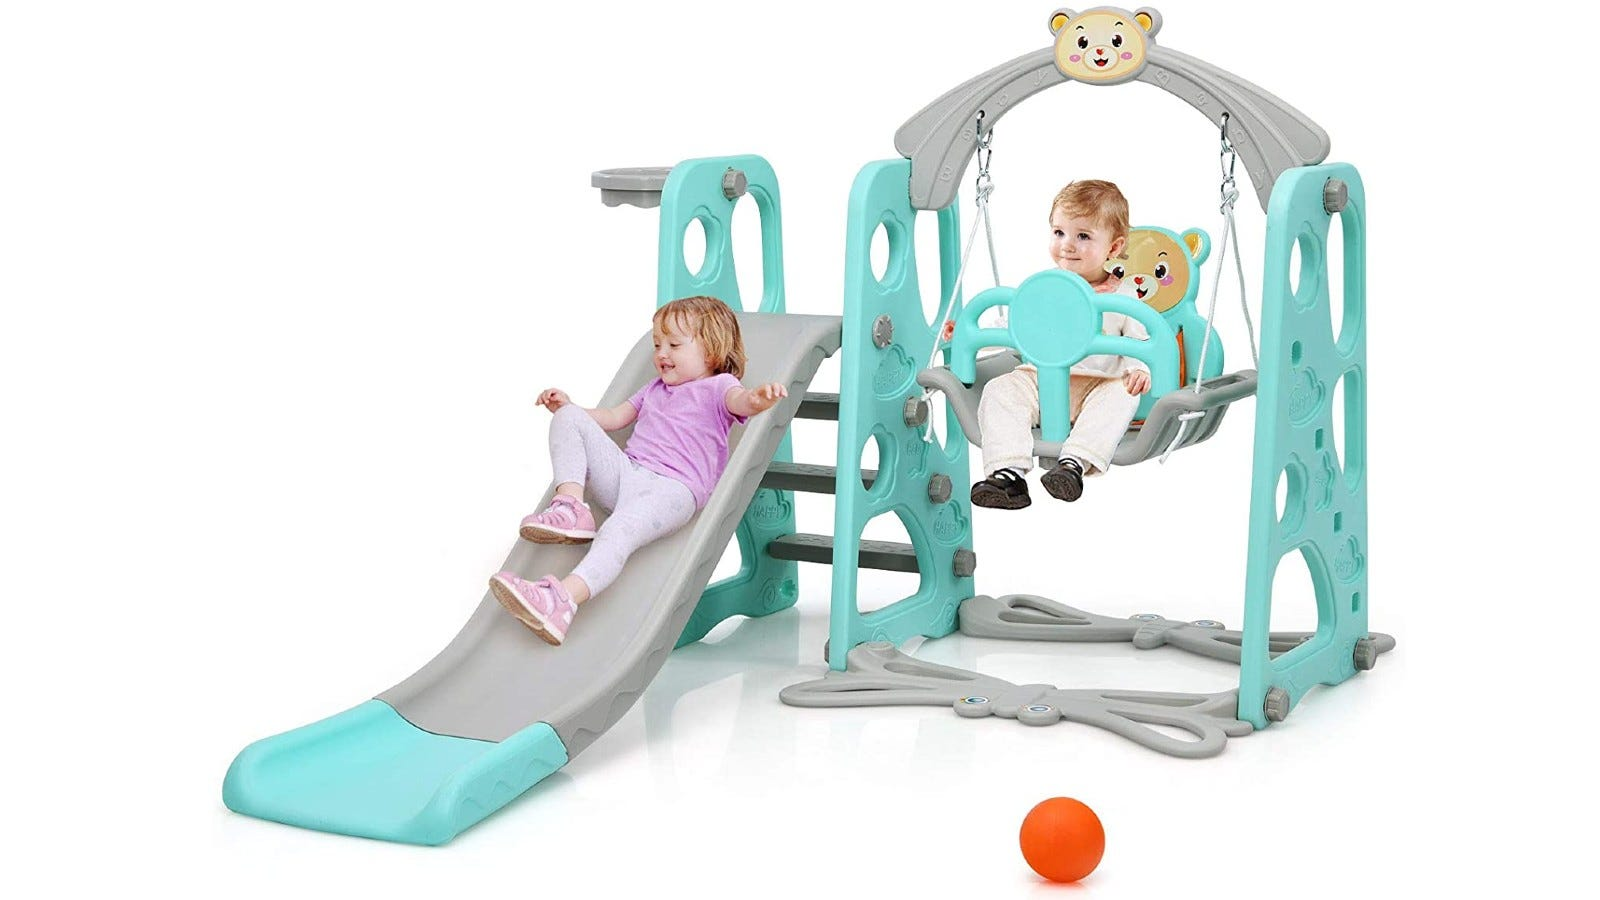 turquoise and gray play set with a slide and swing with two kids playing on it